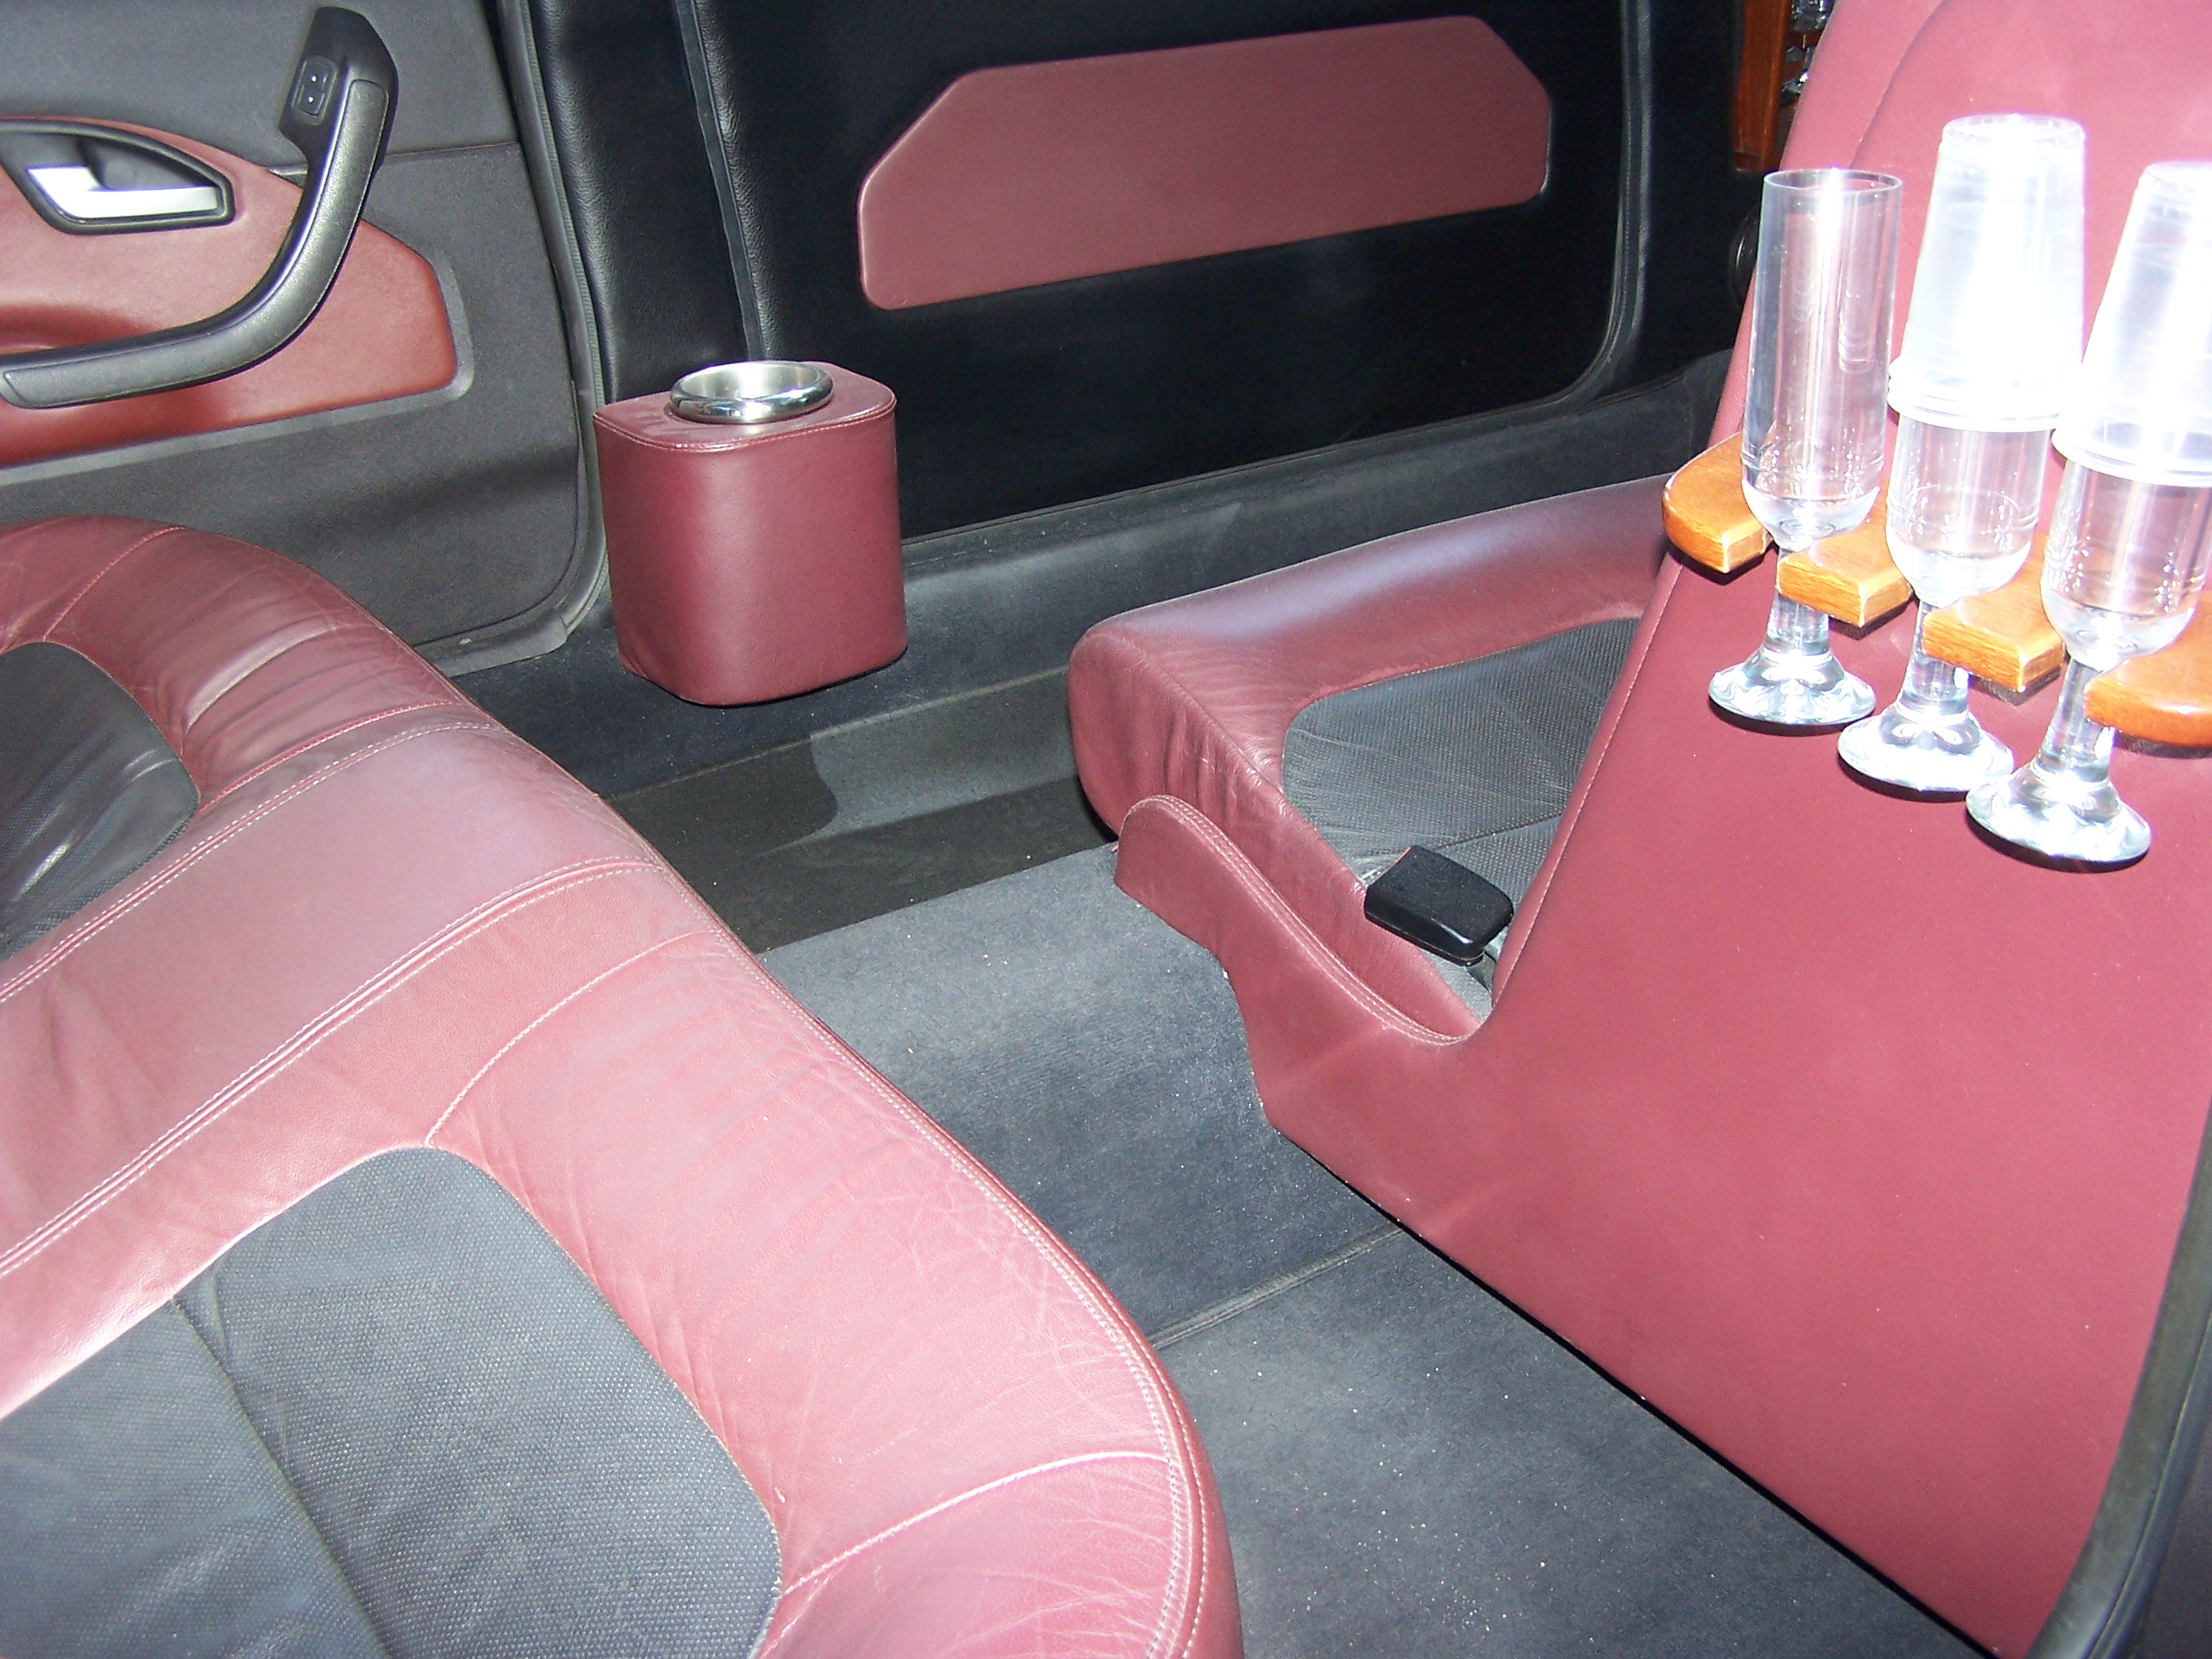 Luxury Leather Interior with Cocktail Bar.